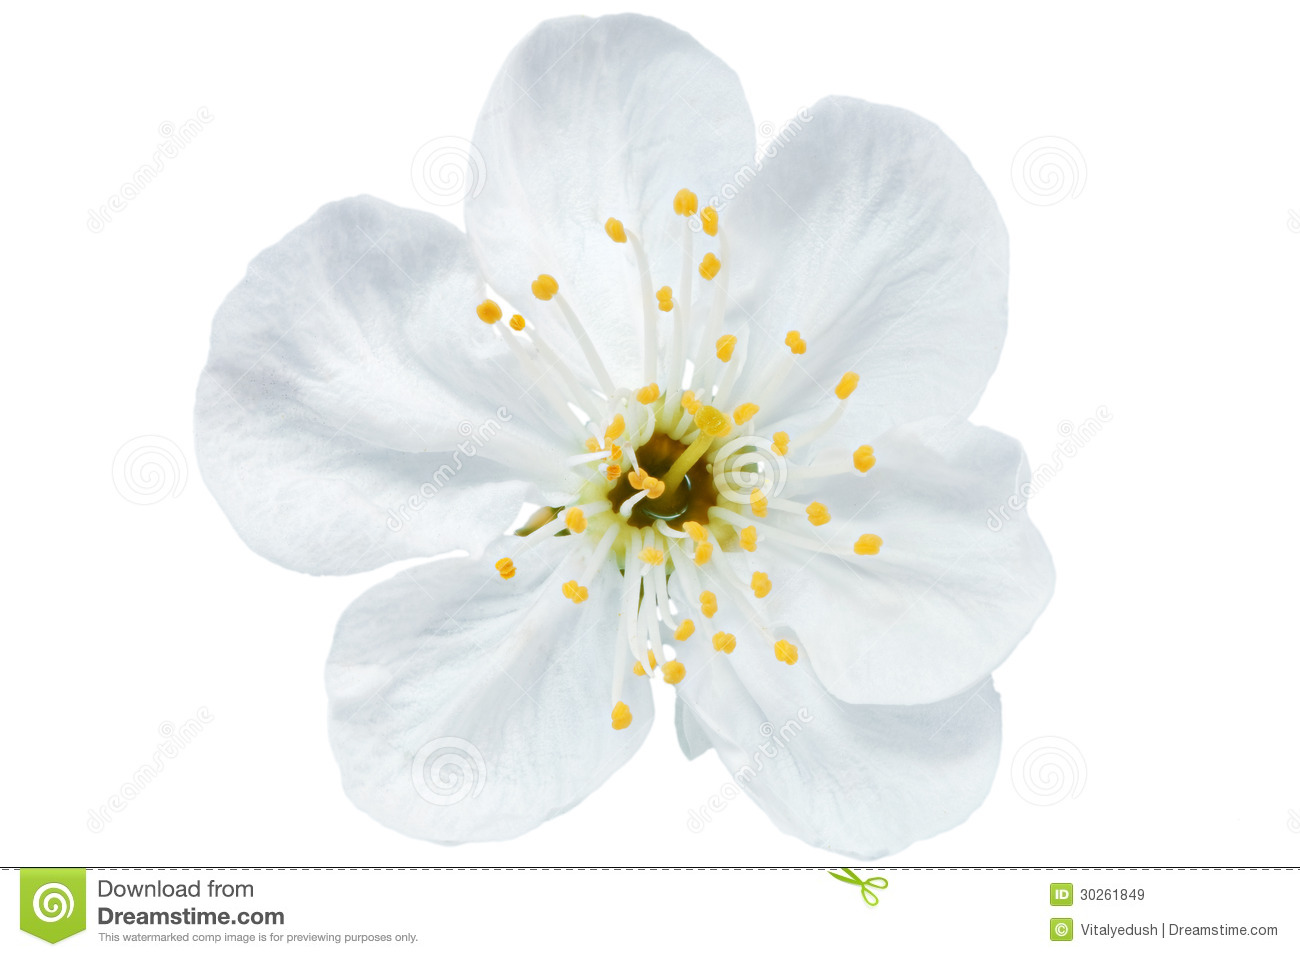 Single flower of cherry isolated on white background stock image download single flower of cherry isolated on white background stock image image of mightylinksfo